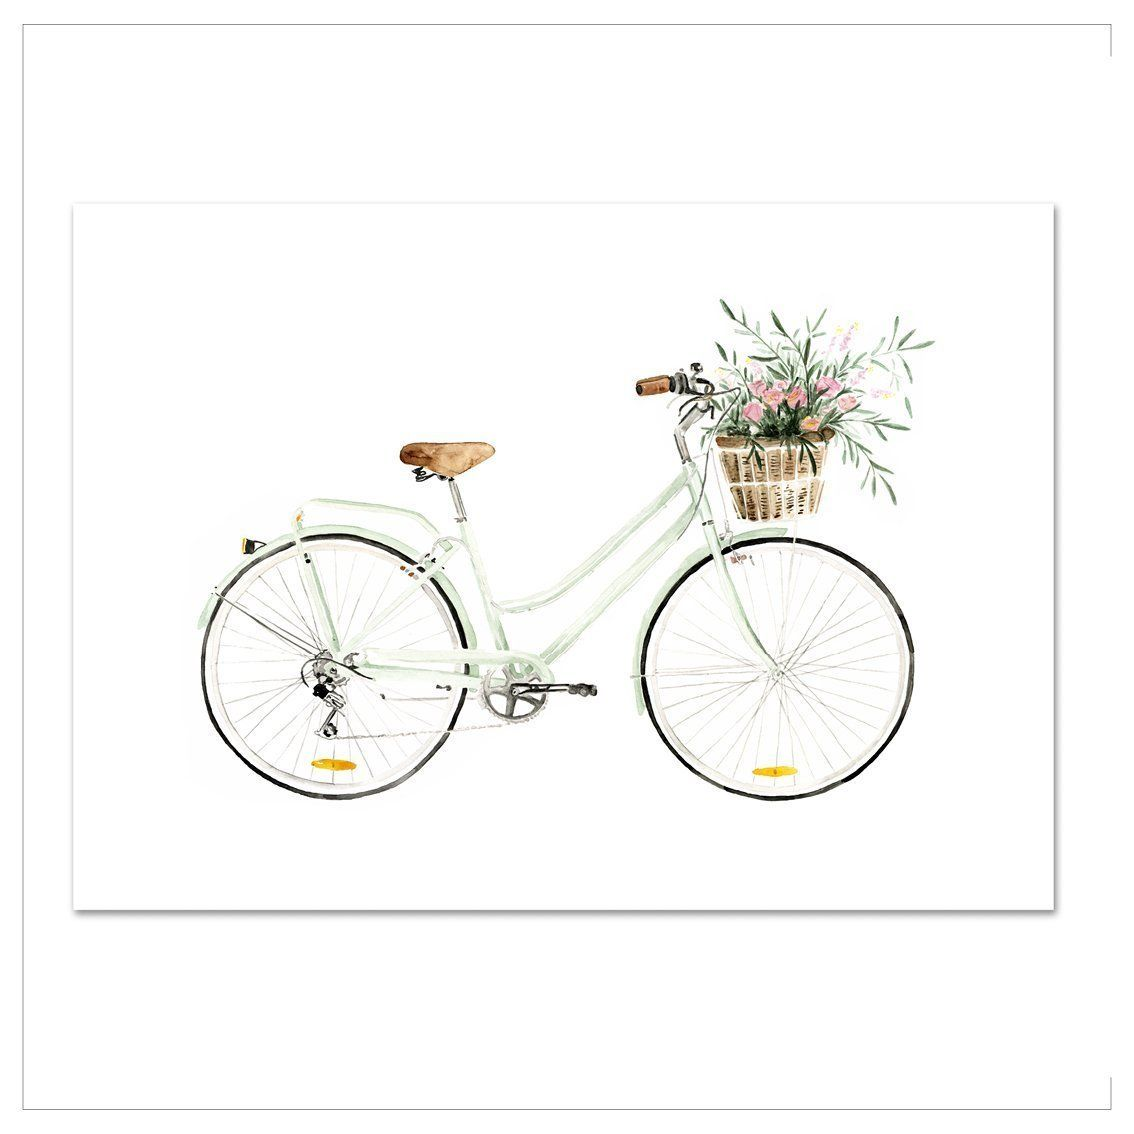 Kunstdruck - BICYCLE-LOVE Kunstdruck Leo la Douce